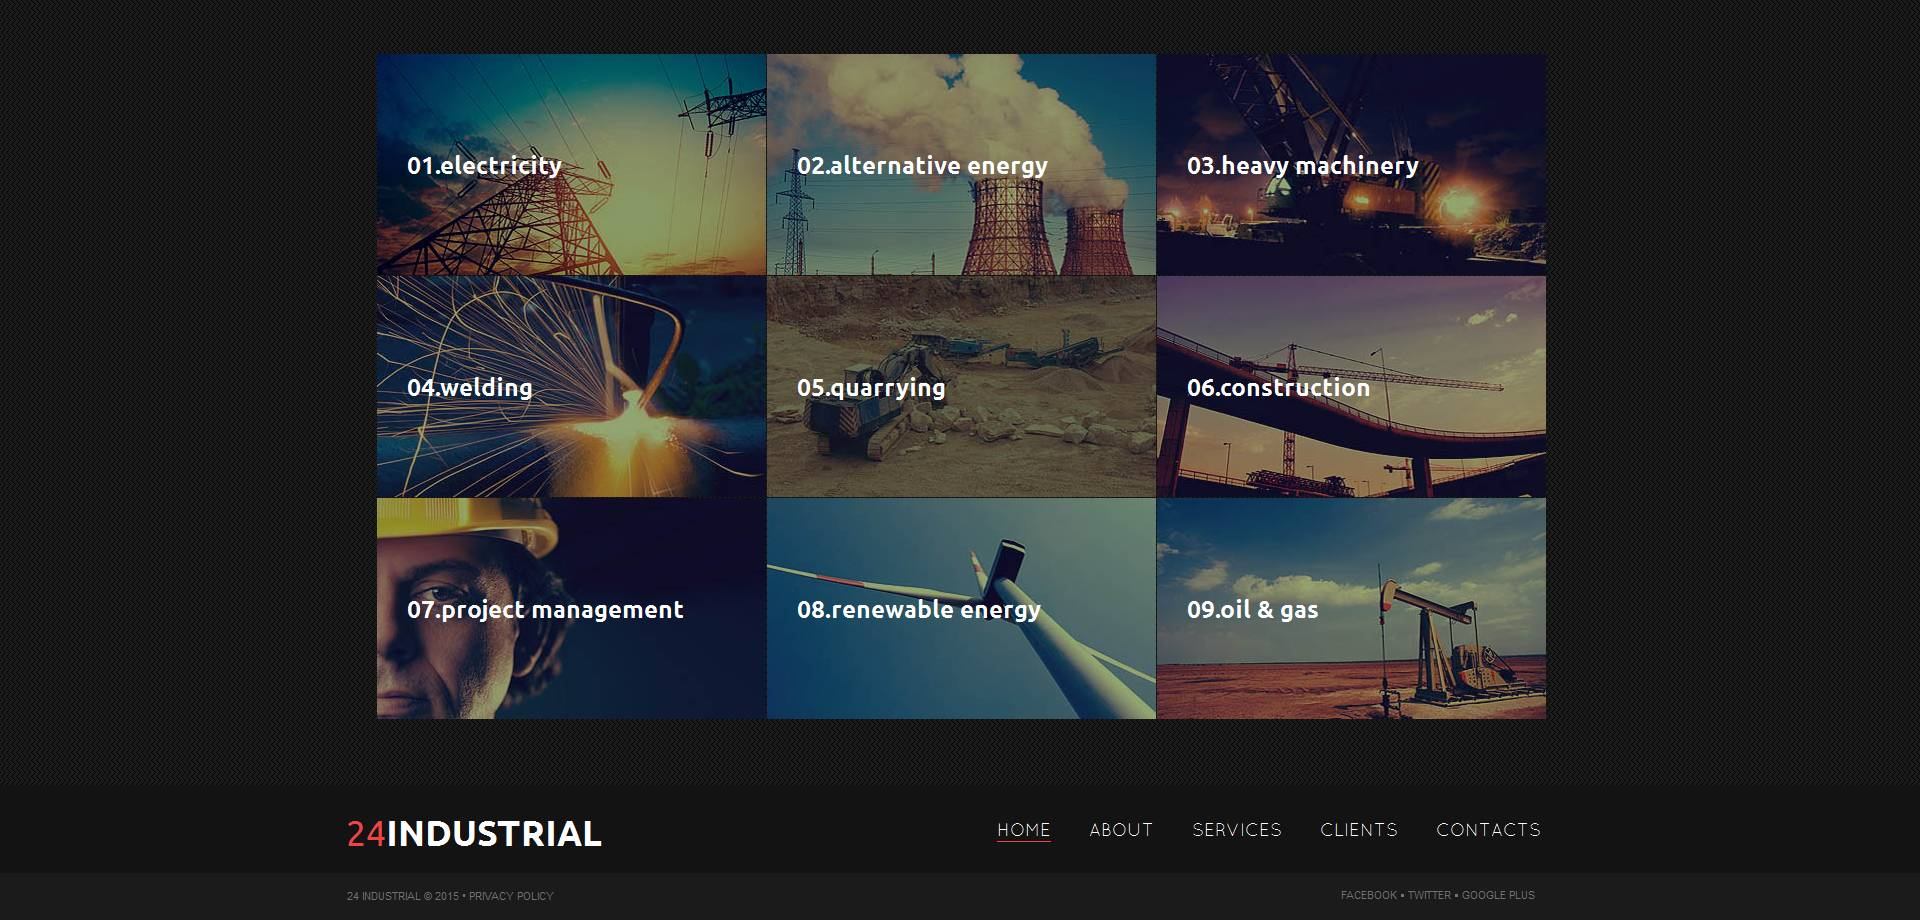 The Industrial Manufacturing Moto CMS HTML Design 53613, one of the best Moto CMS HTML templates of its kind (industrial, most popular), also known as industrial manufacturing Moto CMS HTML template, industrial Moto CMS HTML template, metal Moto CMS HTML template, mining company Moto CMS HTML template, camp Moto CMS HTML template, open-cast Moto CMS HTML template, project Moto CMS HTML template, projects Moto CMS HTML template, services Moto CMS HTML template, human Moto CMS HTML template, resources Moto CMS HTML template, investors Moto CMS HTML template, site Moto CMS HTML template, walking Moto CMS HTML template, excavator Moto CMS HTML template, truck and related with industrial manufacturing, industrial, metal, mining company, camp, open-cast, project, projects, services, human, resources, investors, site, walking, excavator, truck, etc.